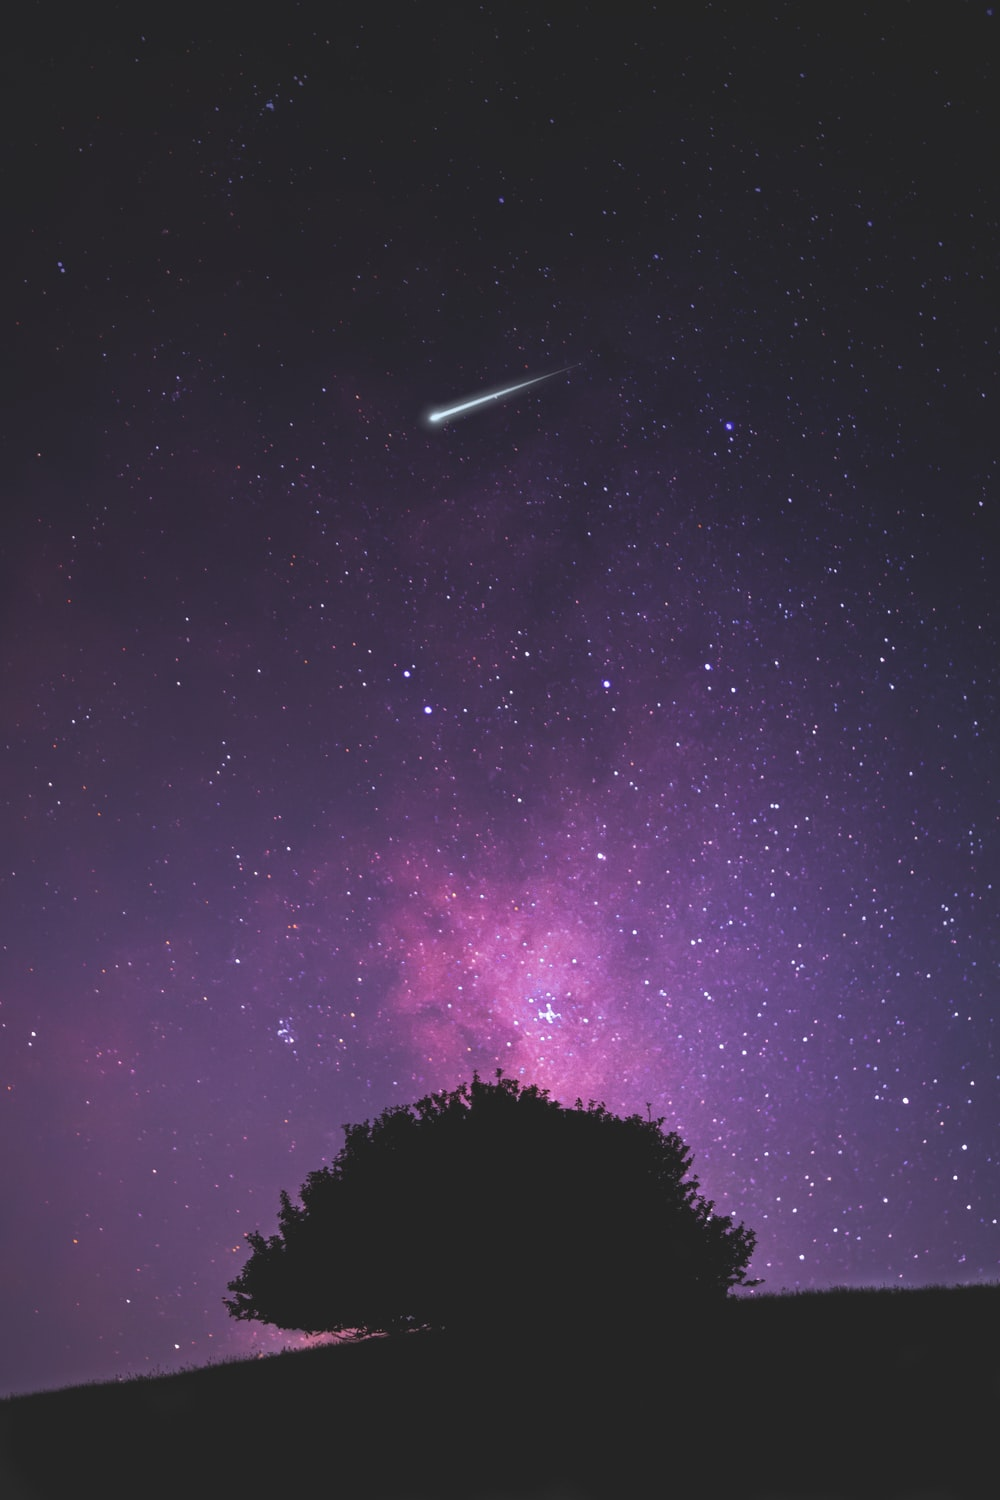 silhouette of tree under purple sky with shooting star at nighttime